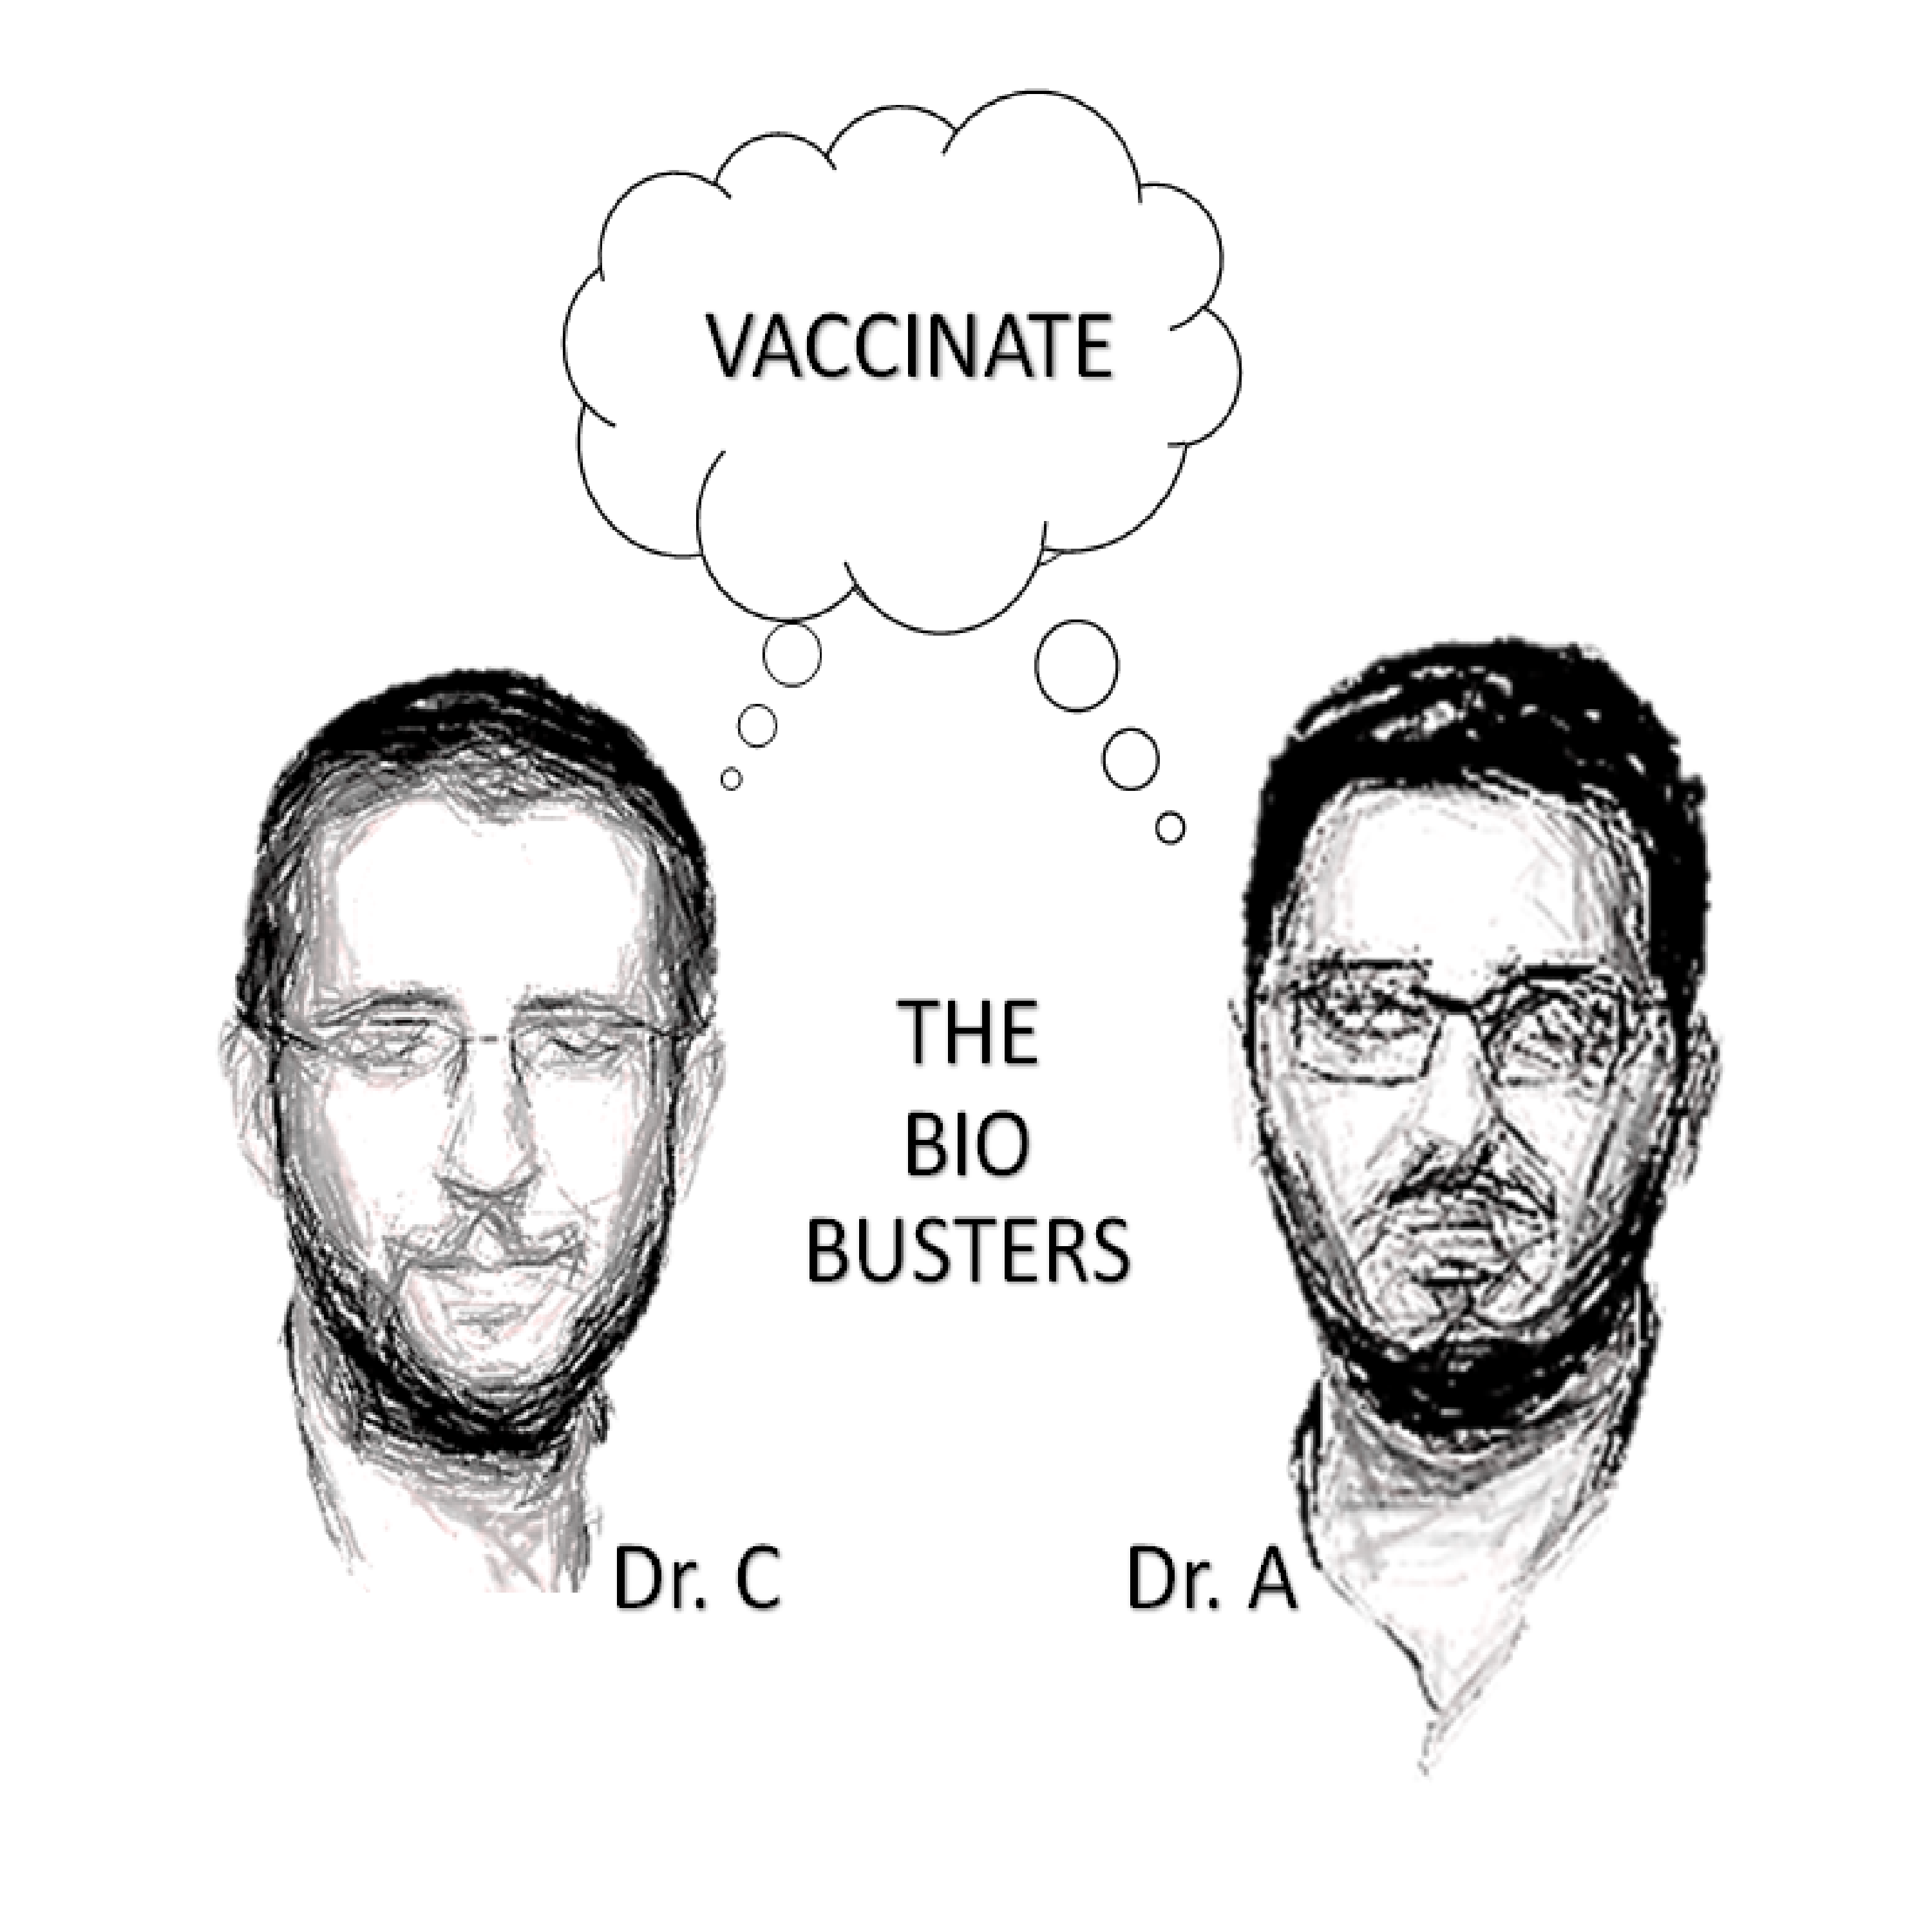 The Bio Busters